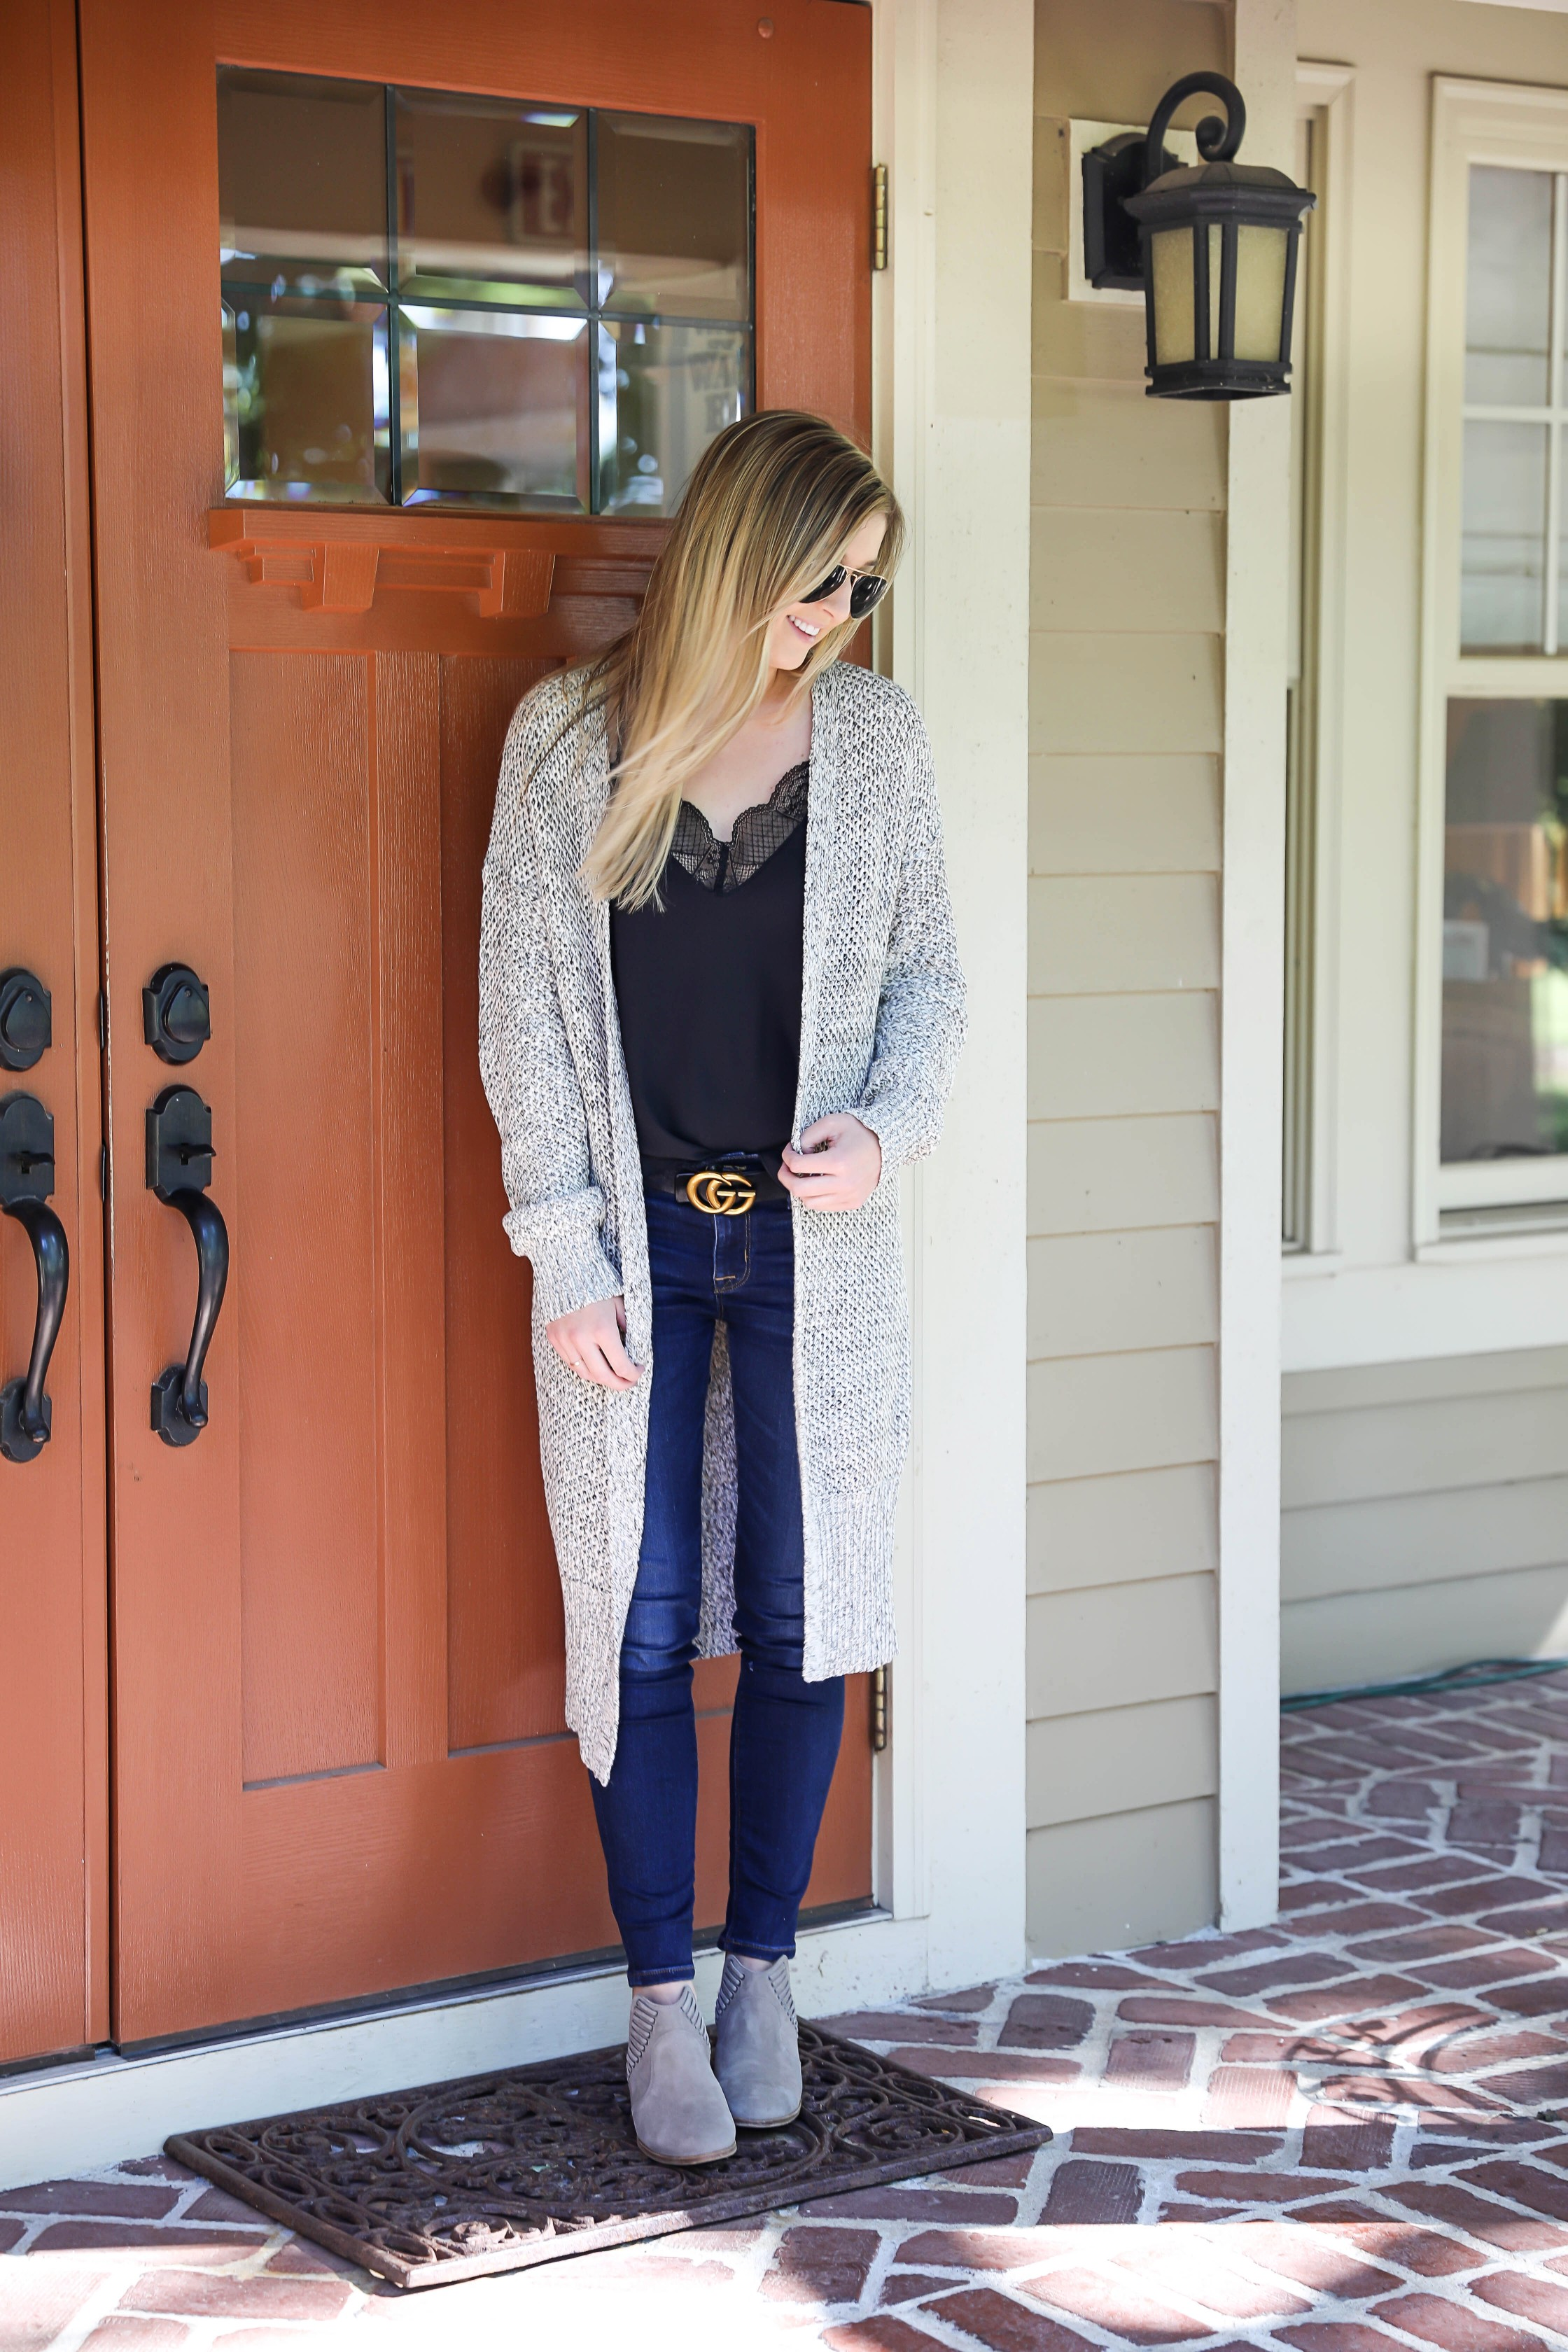 Black cami with long grery knitted duster! Perfect fall outfit paired with a cute gucci belt and dark denim jeans! I am also wearing my vince camuto booties that I love for autumn! Details on fashion blog daily dose of charm by lauren lindmark